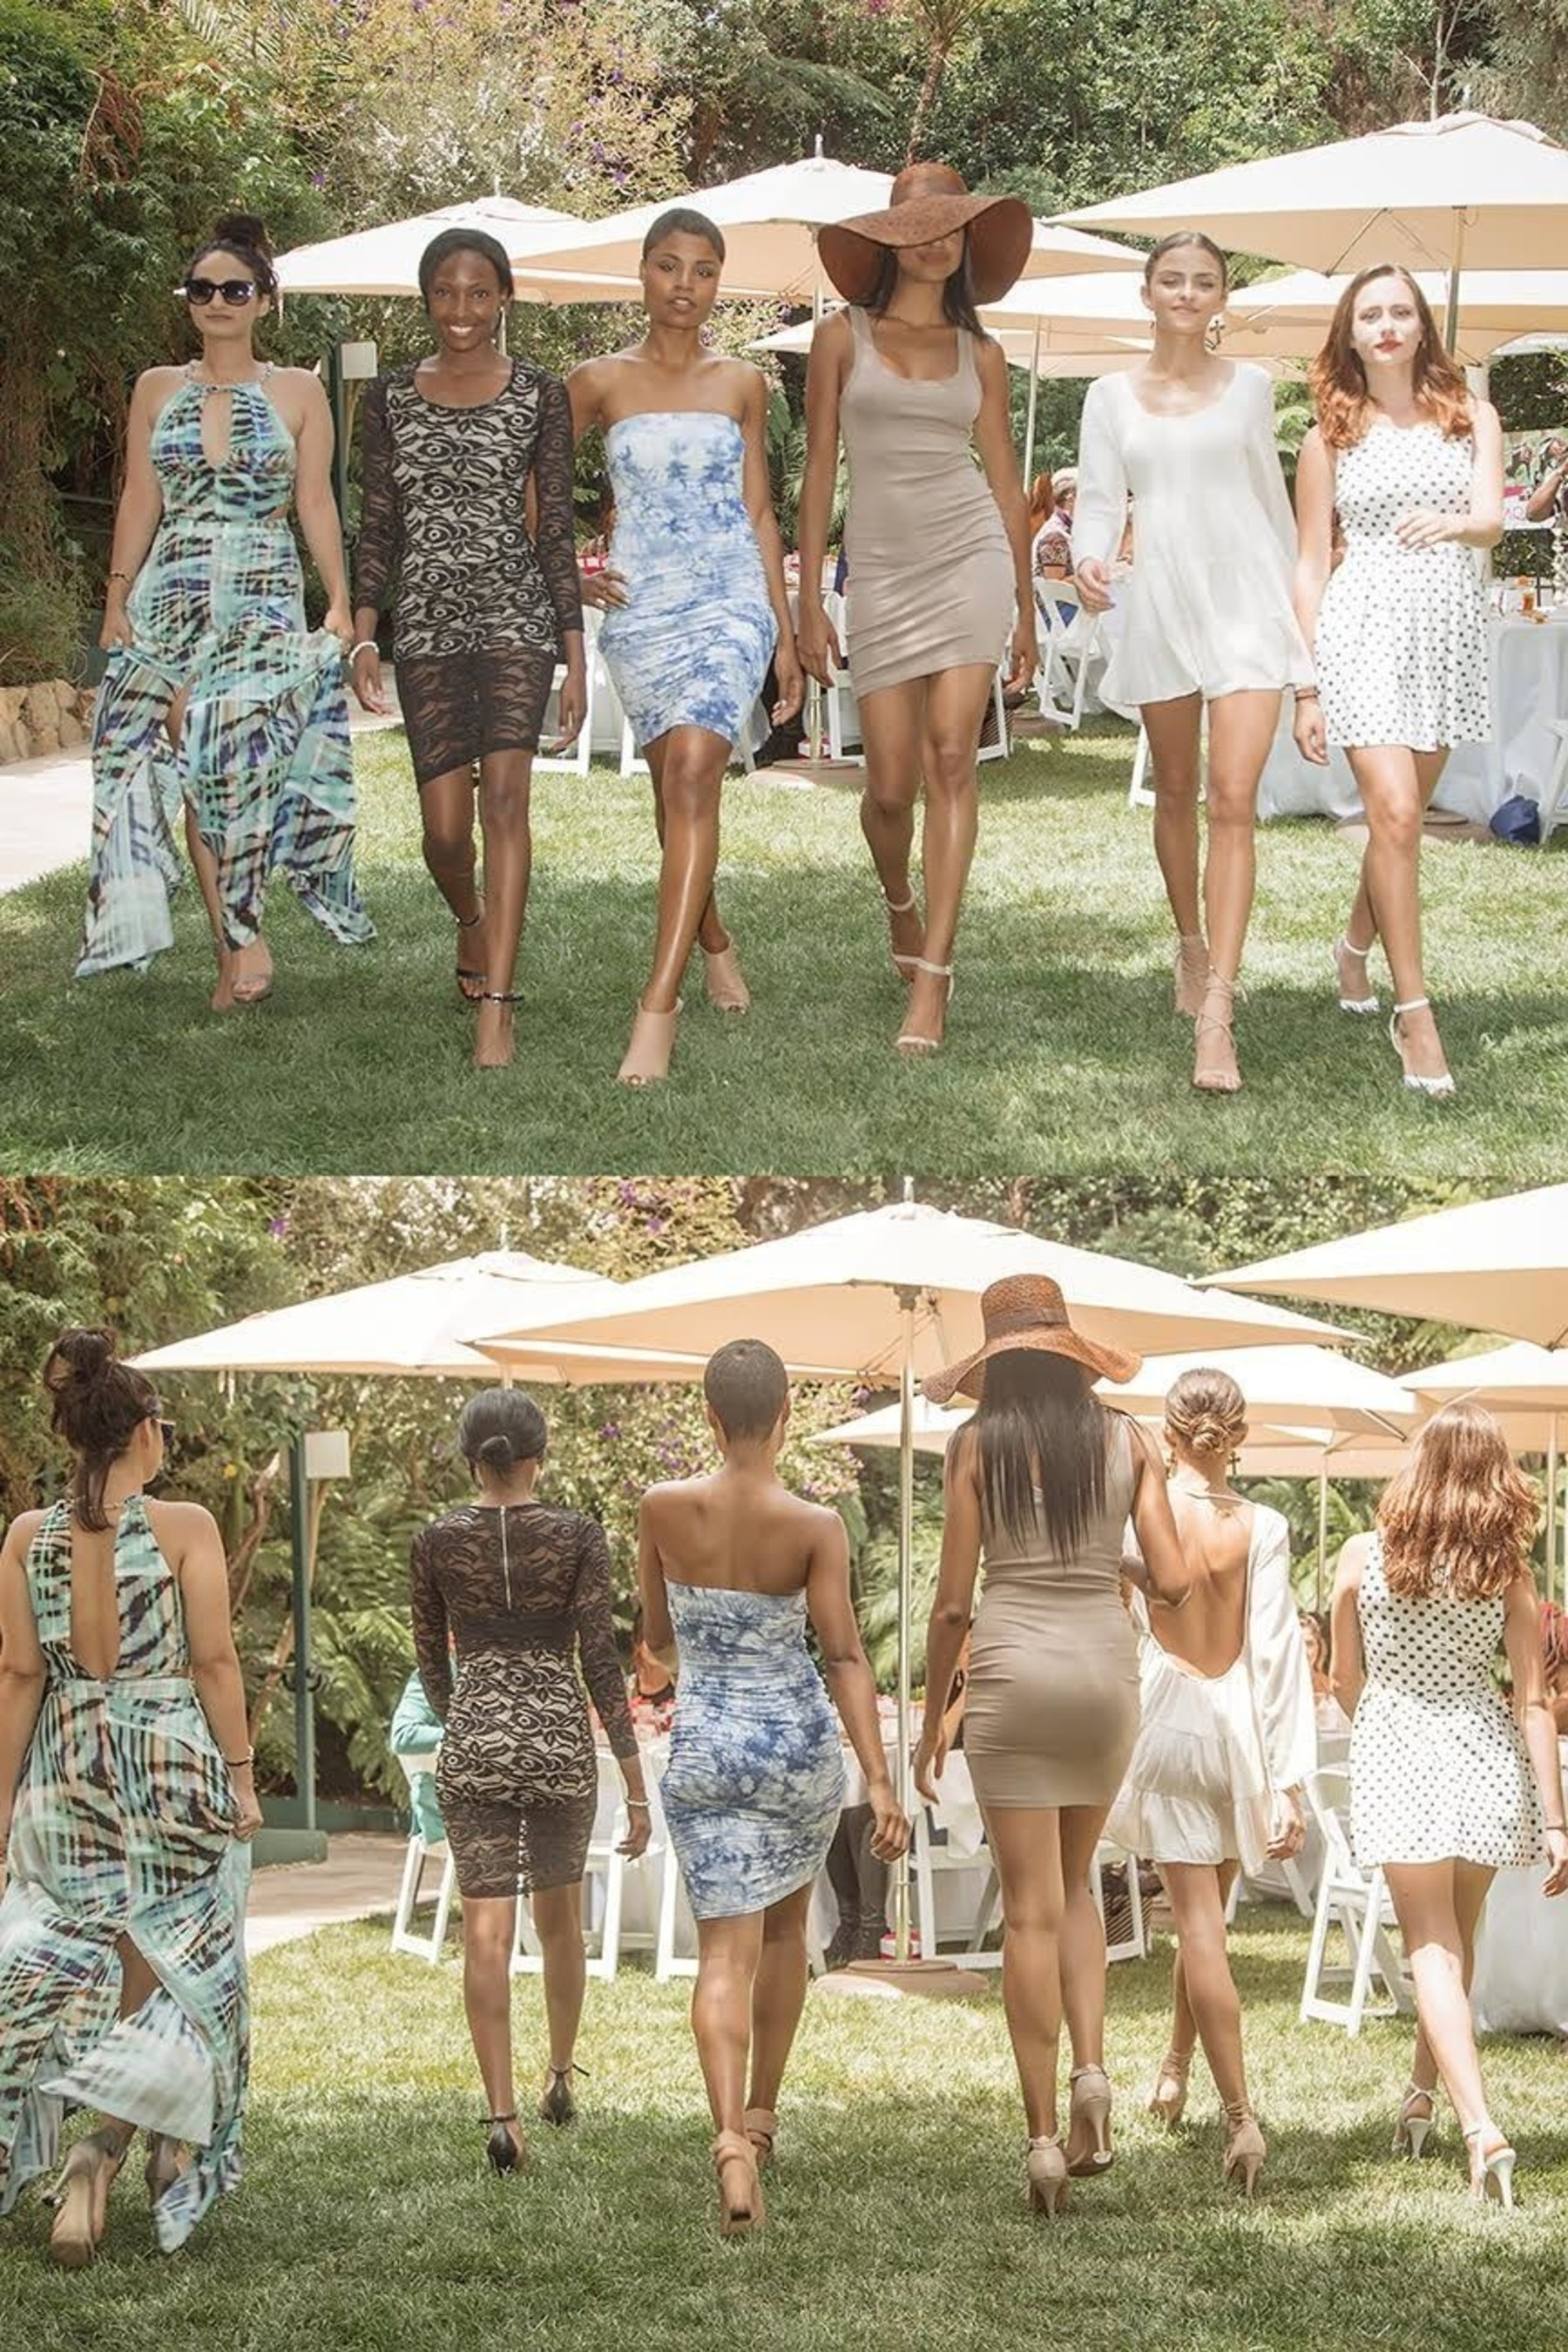 Trendsetting Heel Accessory, Starlettos, attracts Young Hollywood Fashionistas and Influencers to a Garden Tea Party